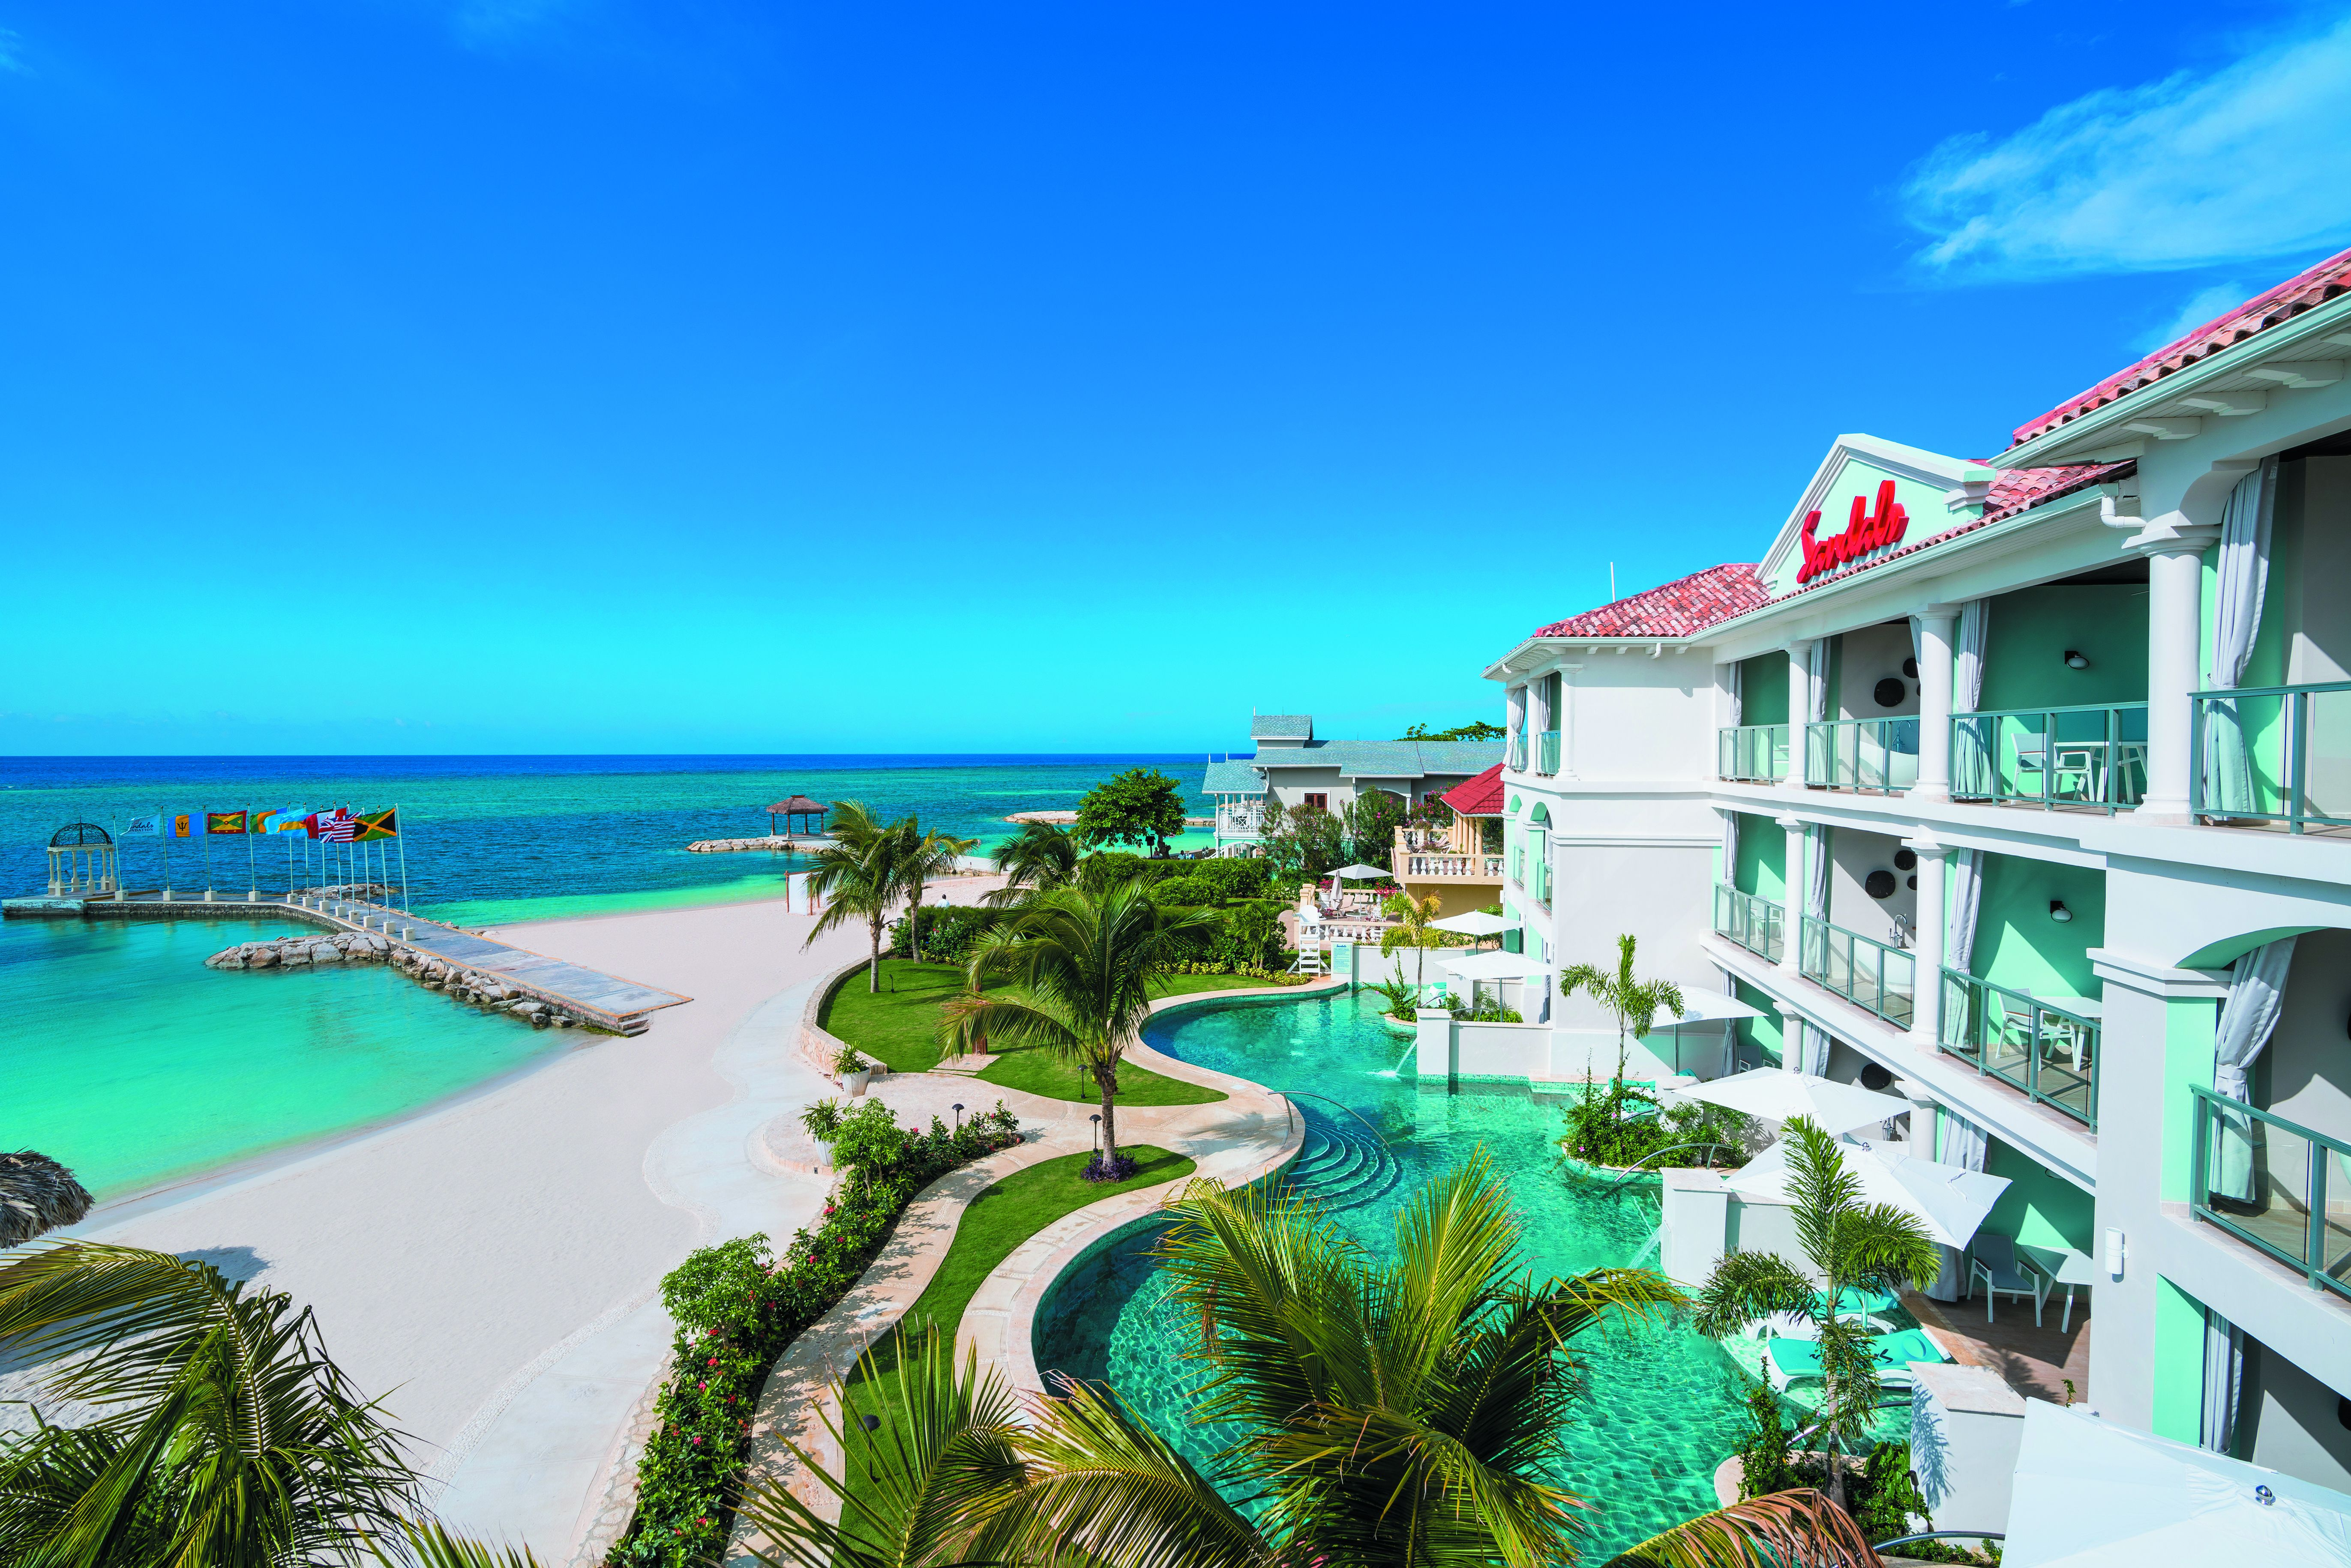 Sandals shows off recently renovated Sandals Montego Bay